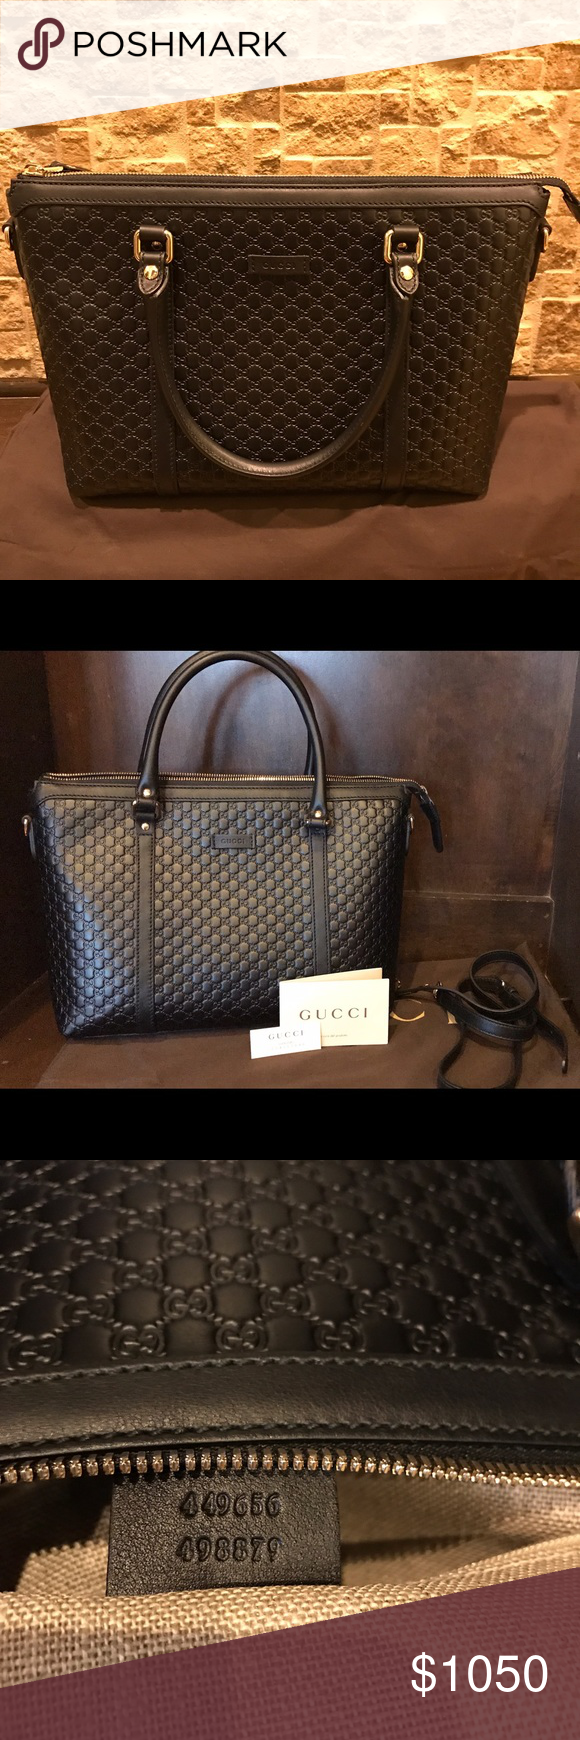 776d675716d1c1 Brand New Gucci Leather Micro Guccissima tore. No trade please. Brand new!  Purchased this Auth Gucci black leather Guccissima bag in Italy. Brand new.